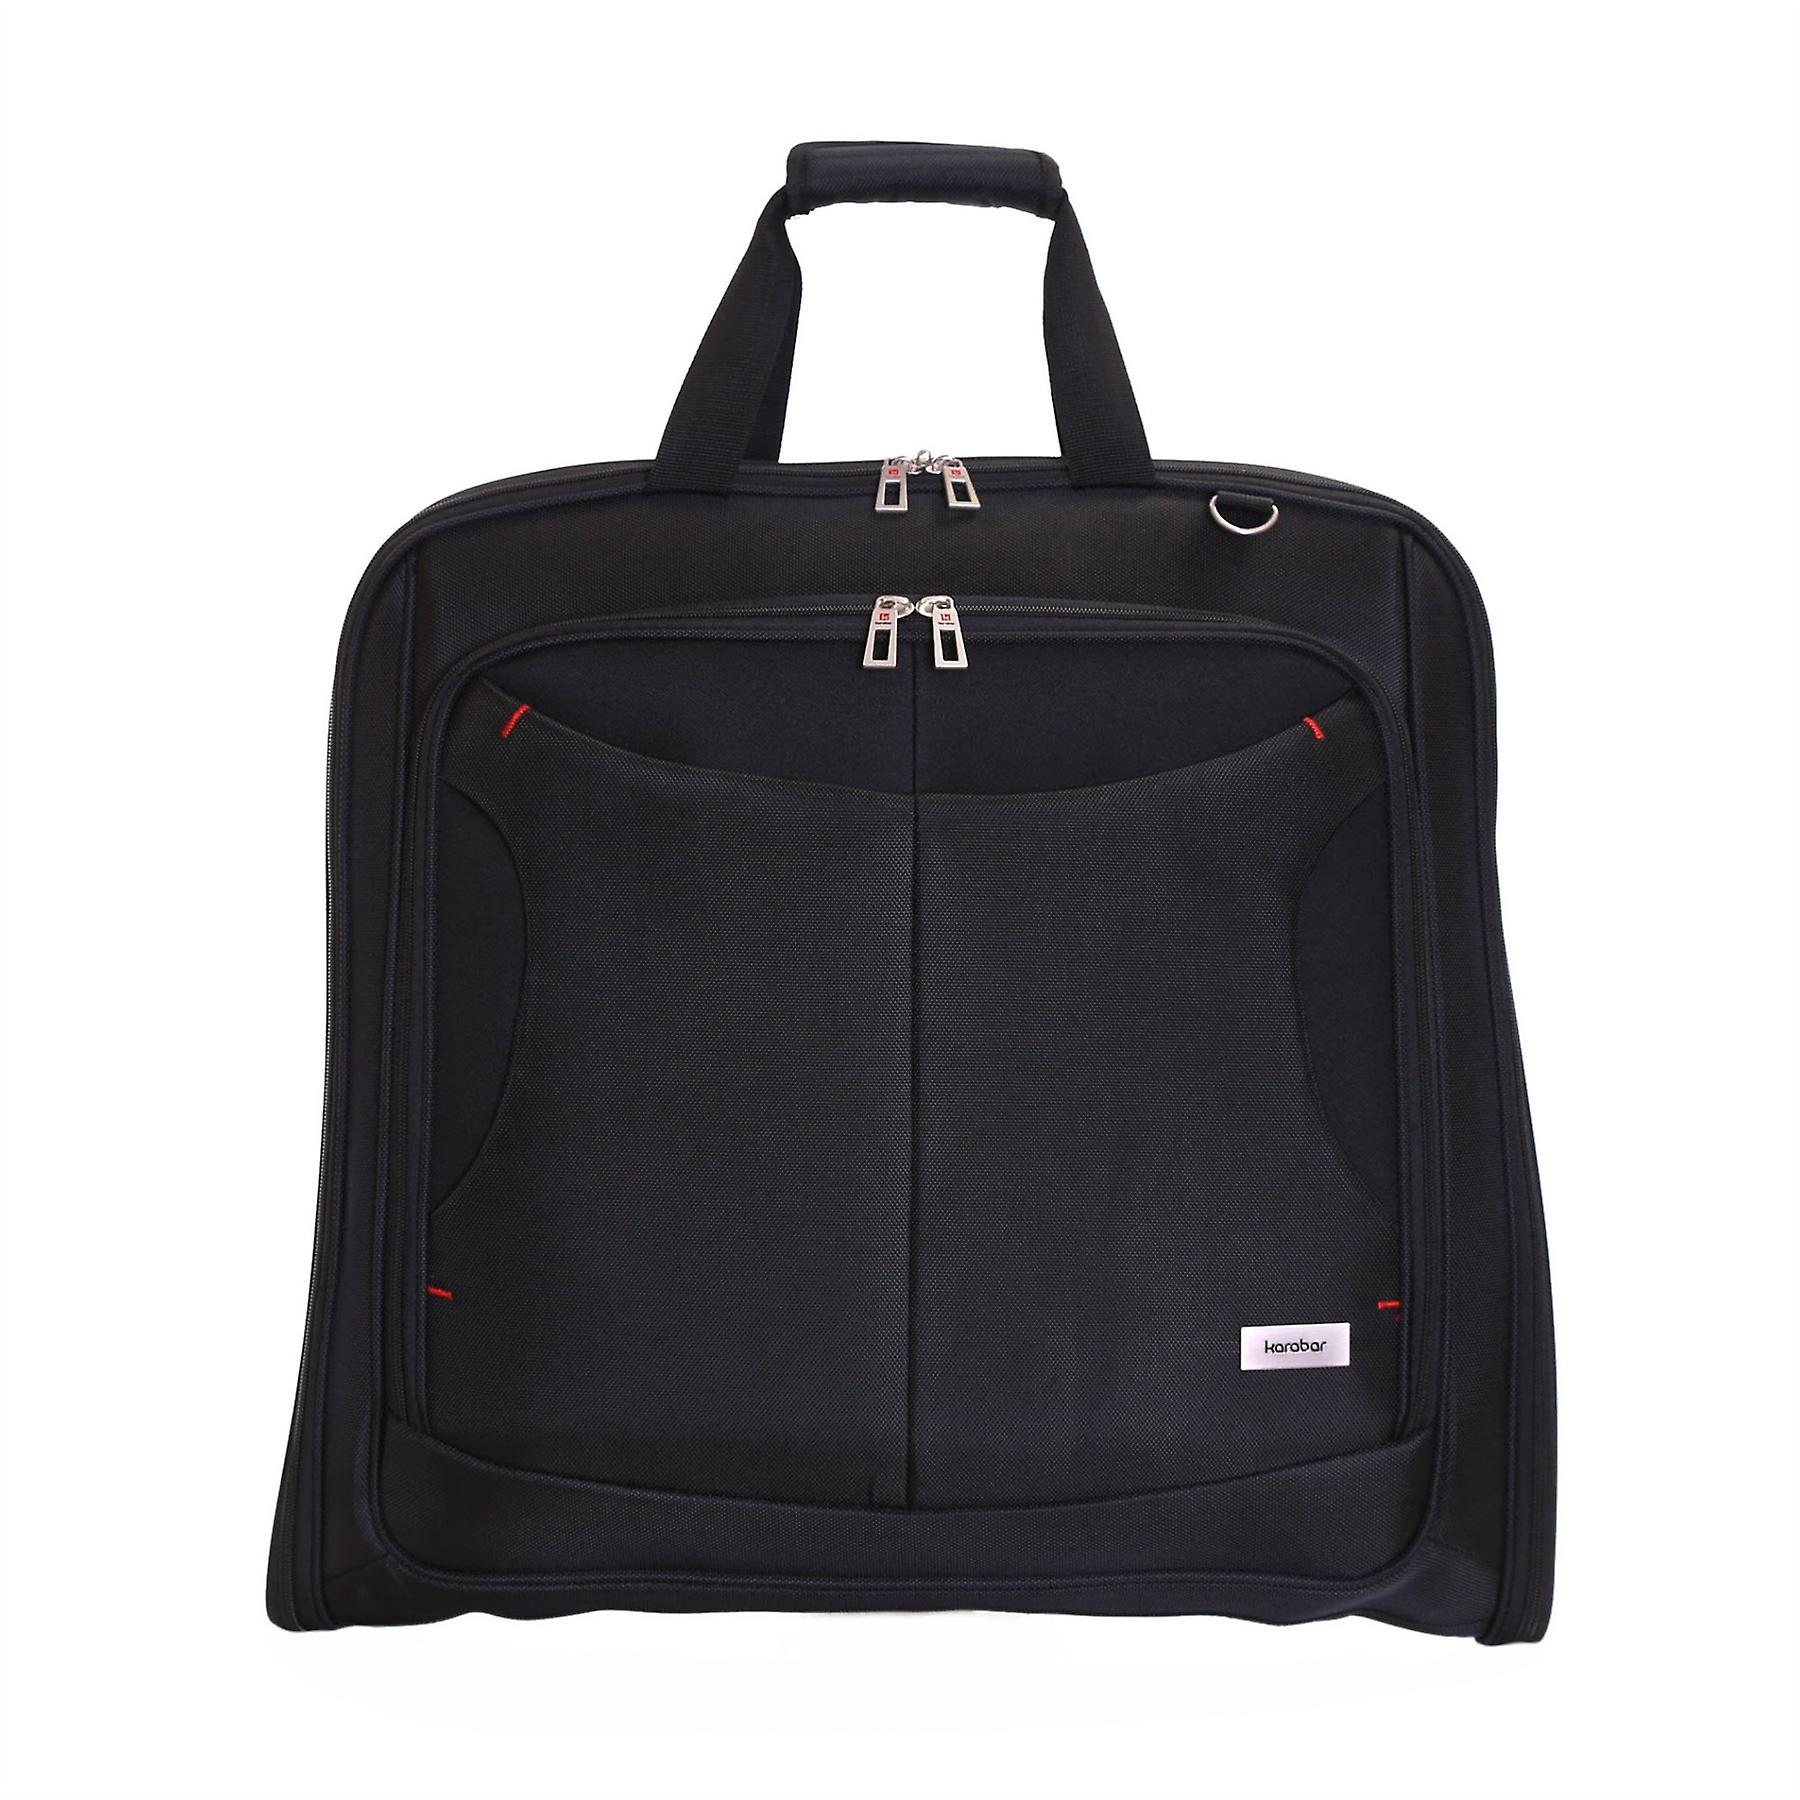 Karabar Salisbury Suit/Garment Carrier, Black